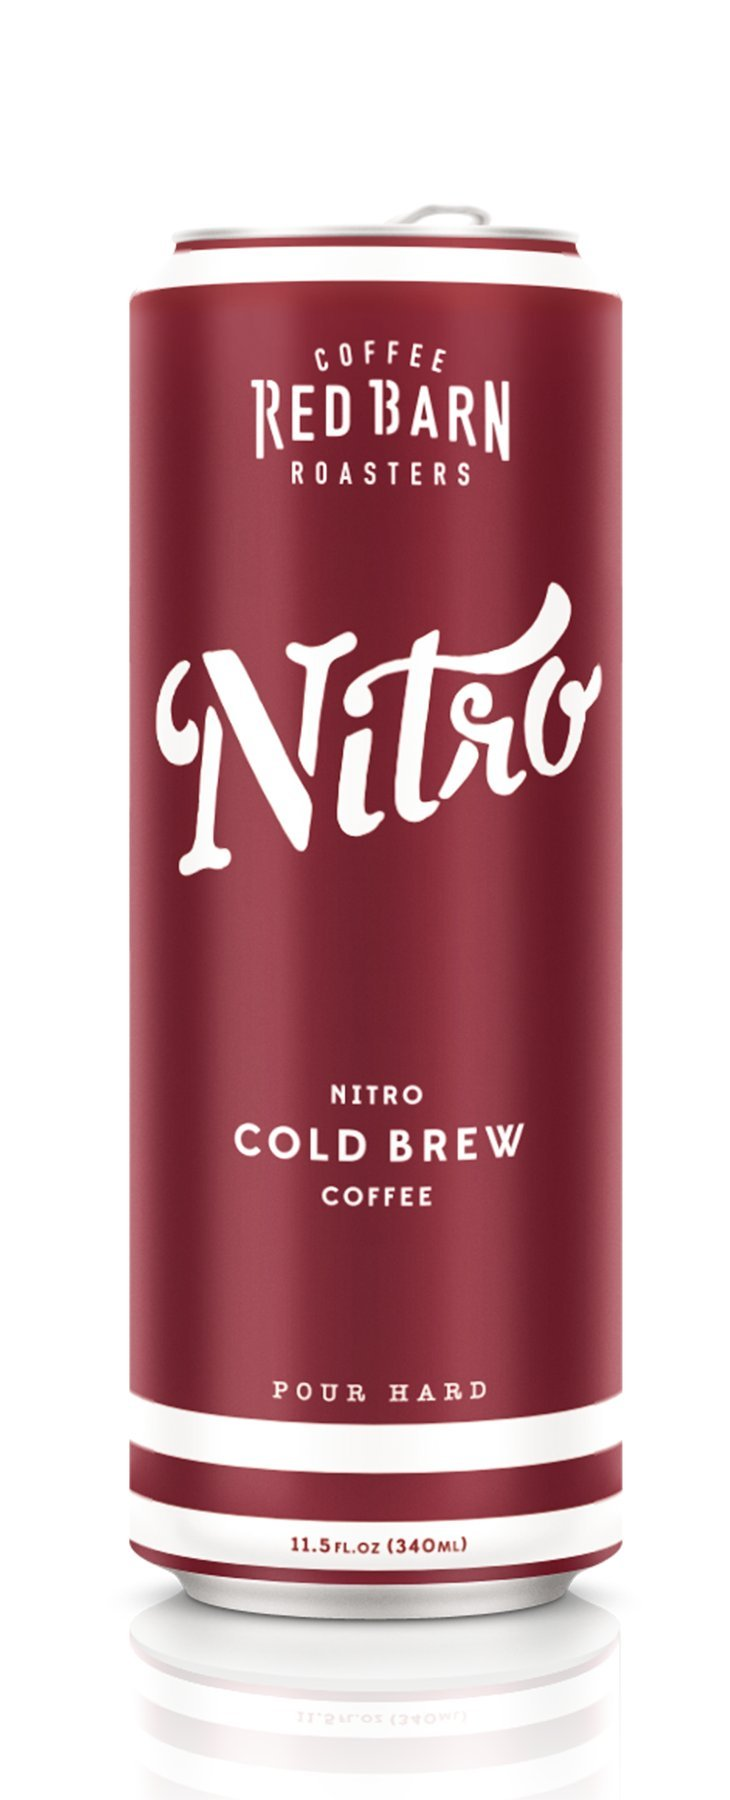 Nitro Cold Brew Coffee (12 11.5 fl. oz. cans) | Red Barn Coffee Roasters | Shelf Stable - No Preservatives | 3 Ingredients - Coffee, Water, Nitrogen | 240 MG Caffeine by Red Barn Coffee Roasters